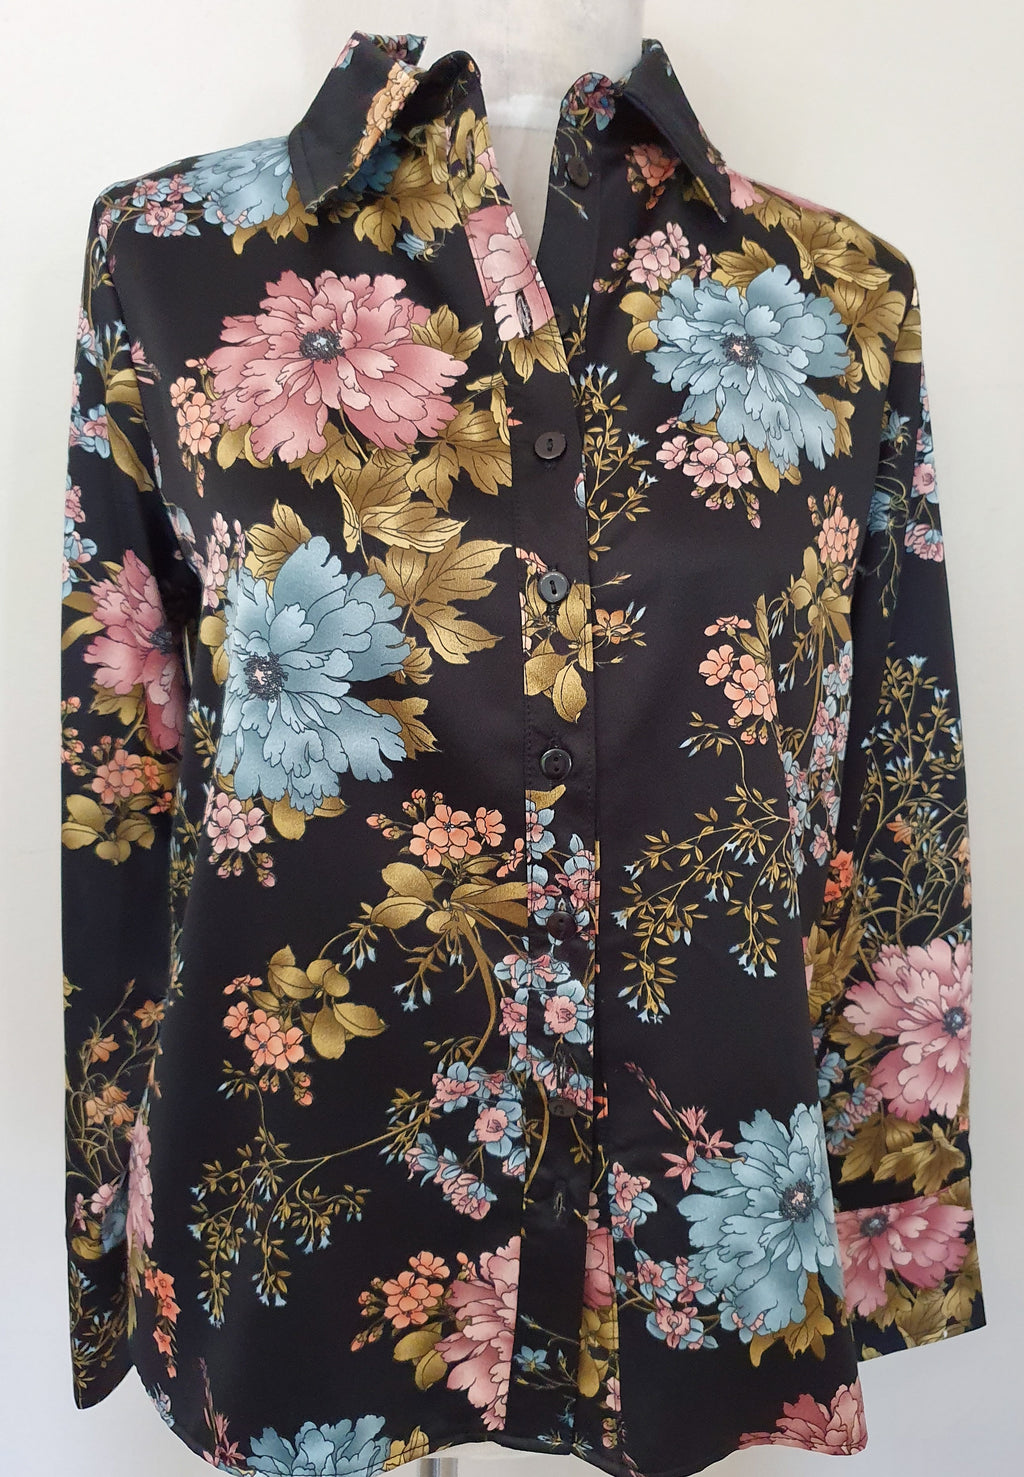 Ariana Shirt - Black Floral